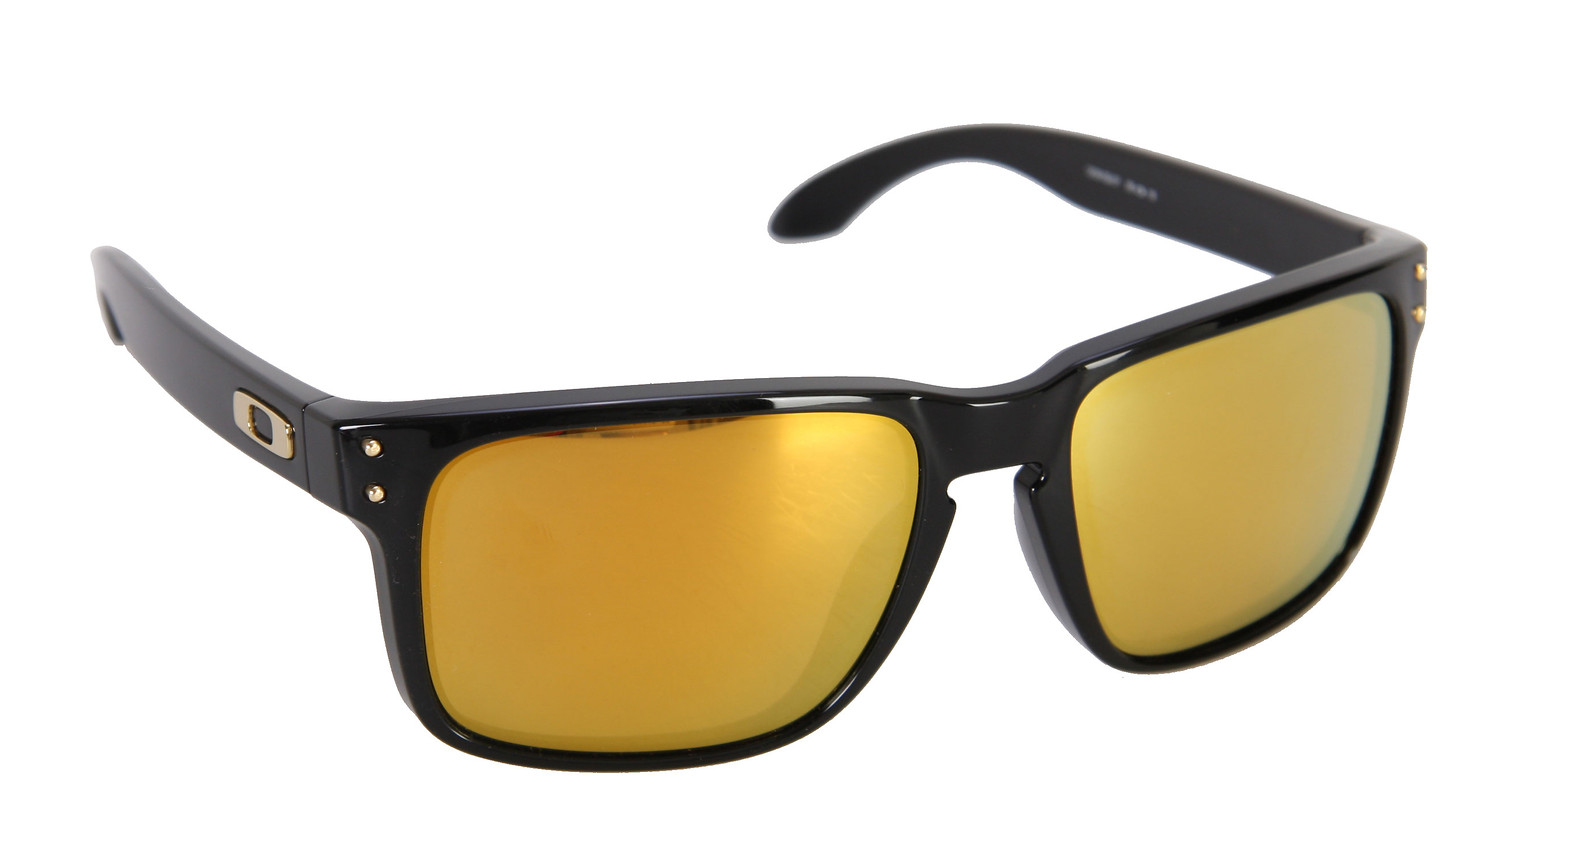 oakley sunglasses queenstown  oakley holbrook sunglasses polished black/24k gold irid lens oakley holbrook sngls